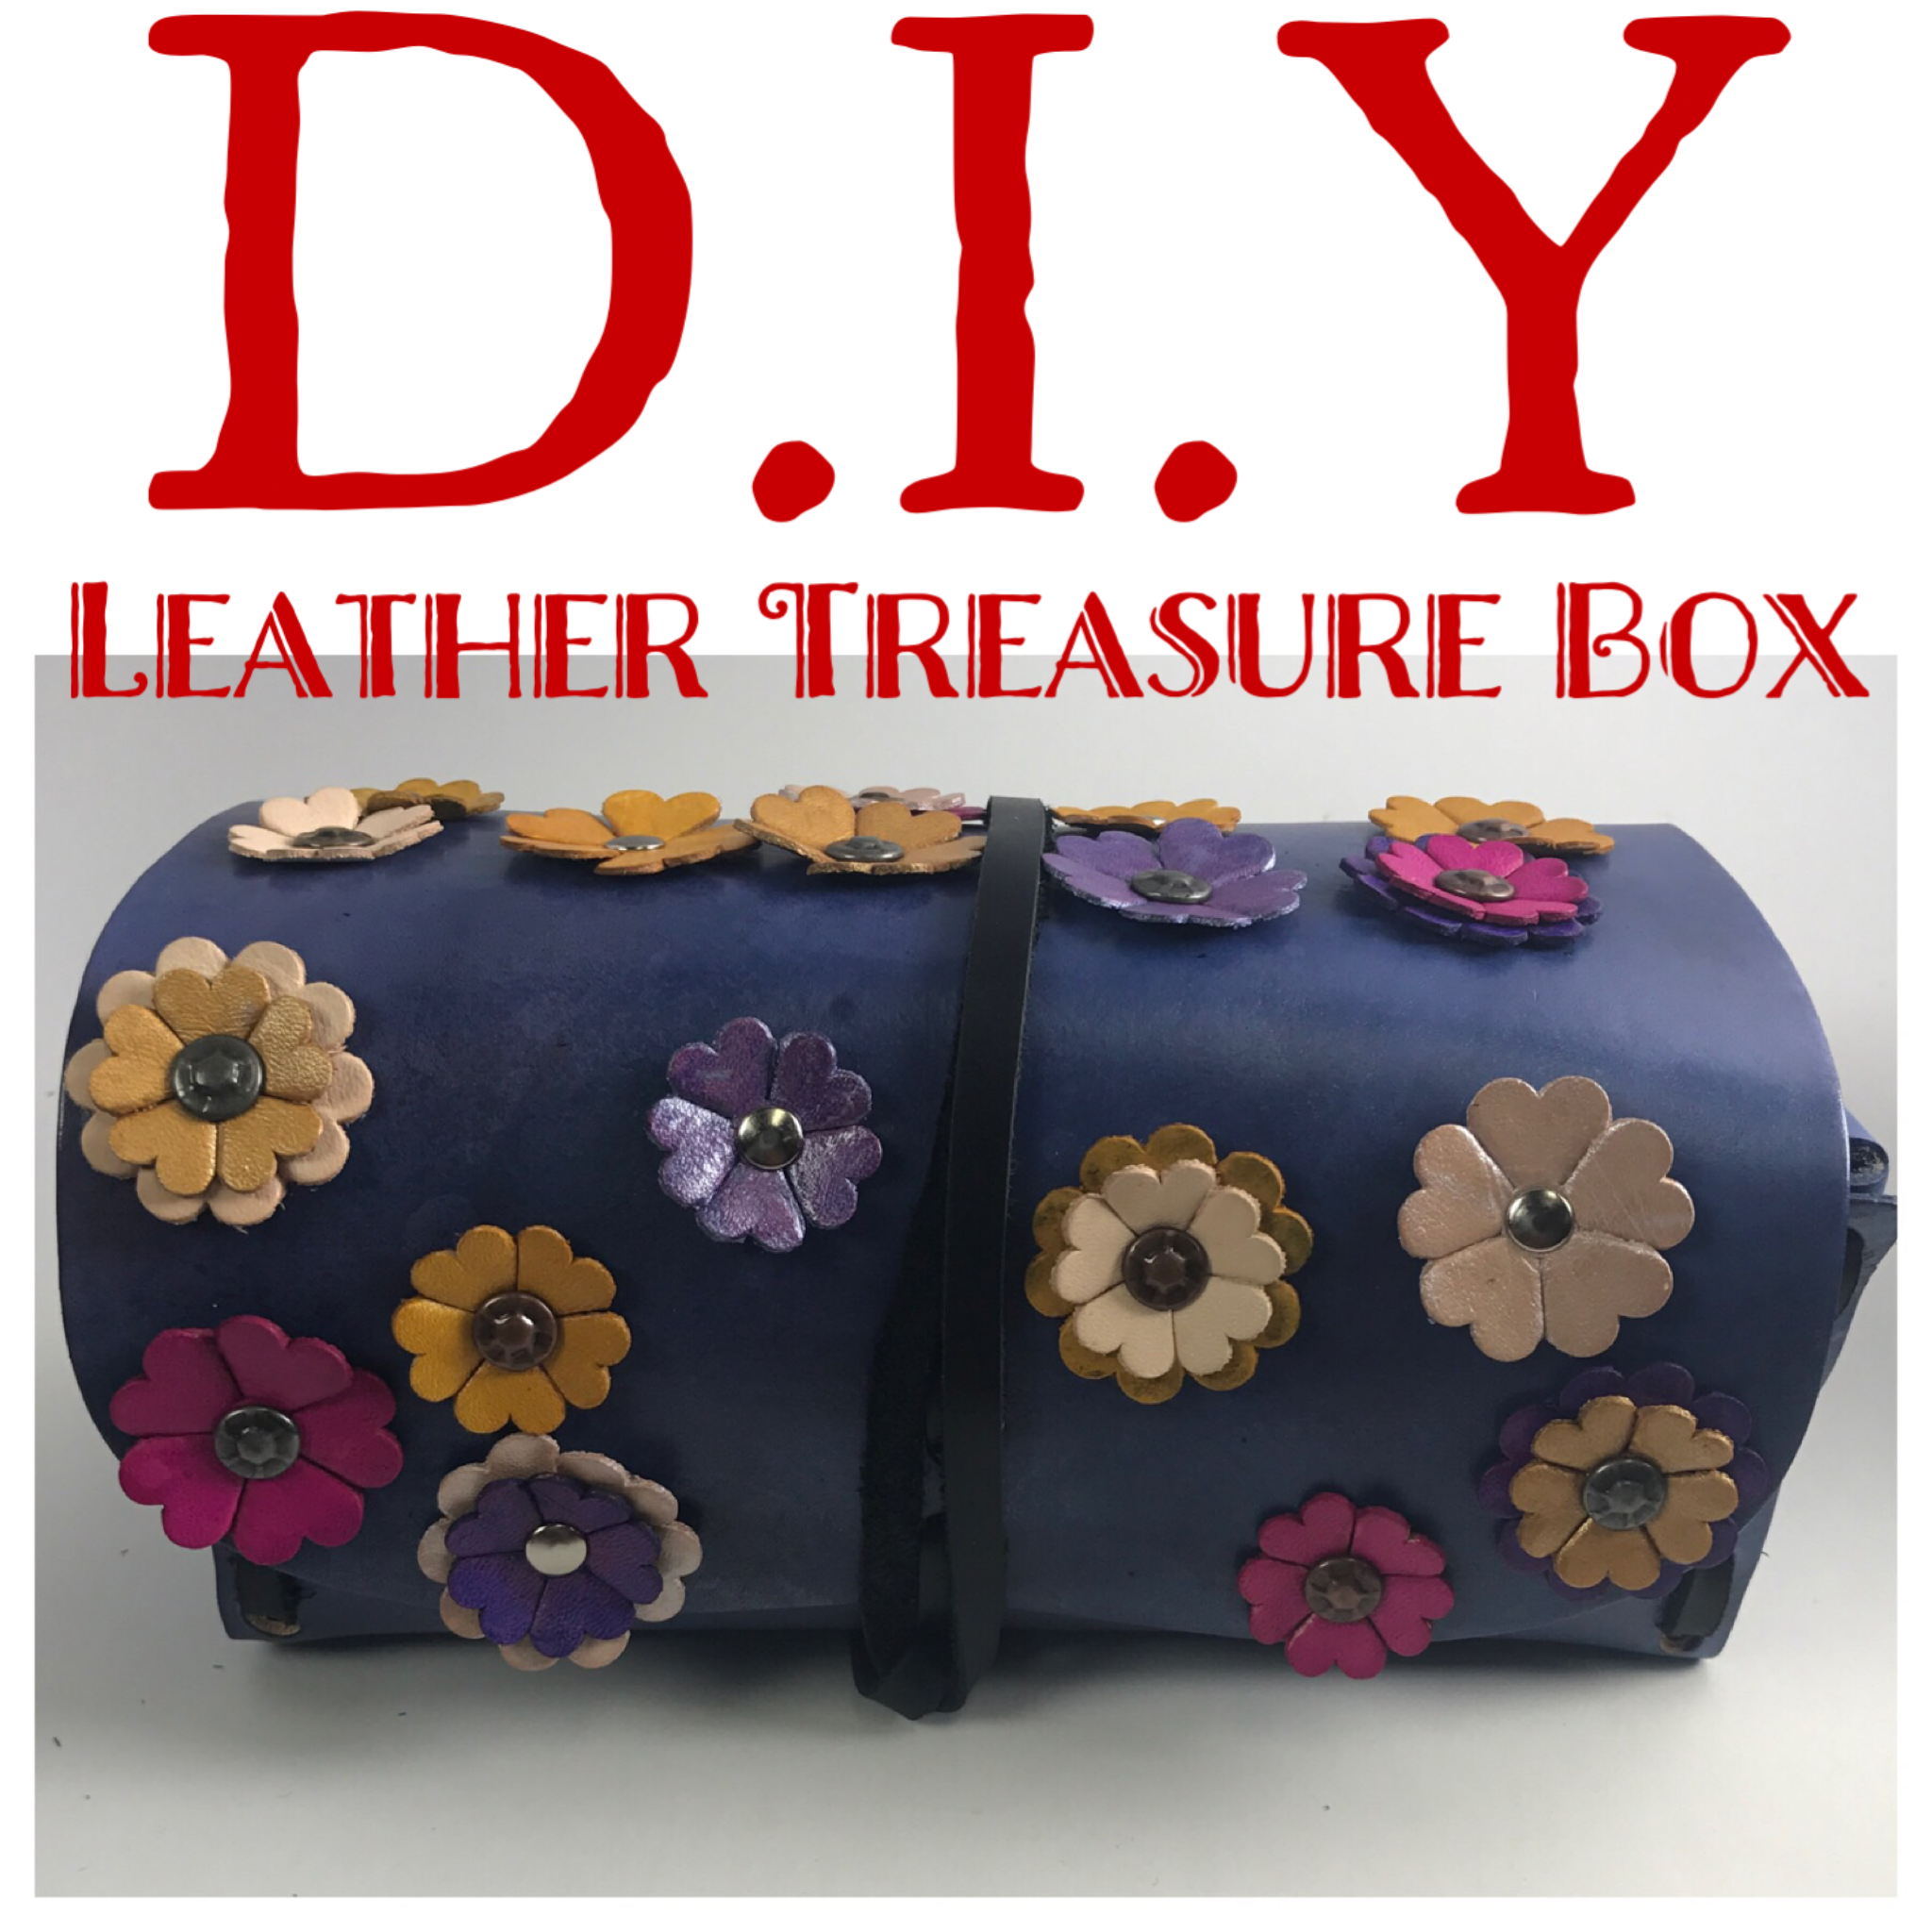 Leather Kits,Use with my Tutorials and Online Workshops,Cowhide,Kidskin,5 Options,Ready to Dye or Imprint,Supplies,DIY Leather,Ecoprint,Dyes